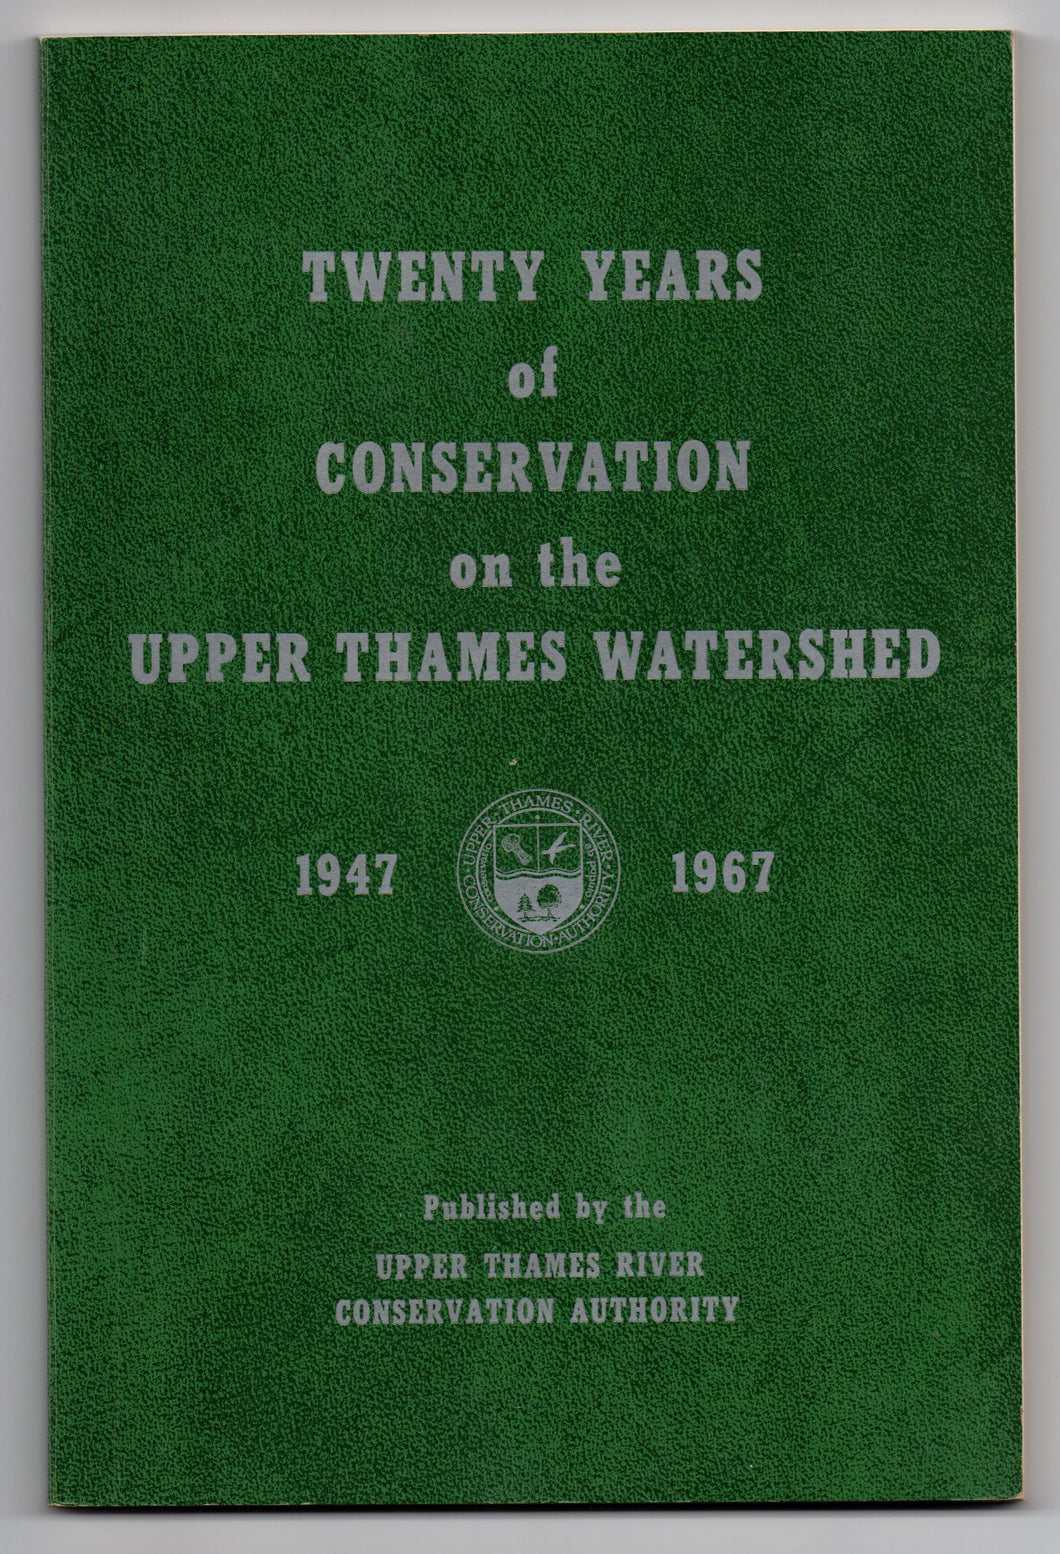 Twenty Years of Conservation on the Upper Thames Watershed 1947-1967